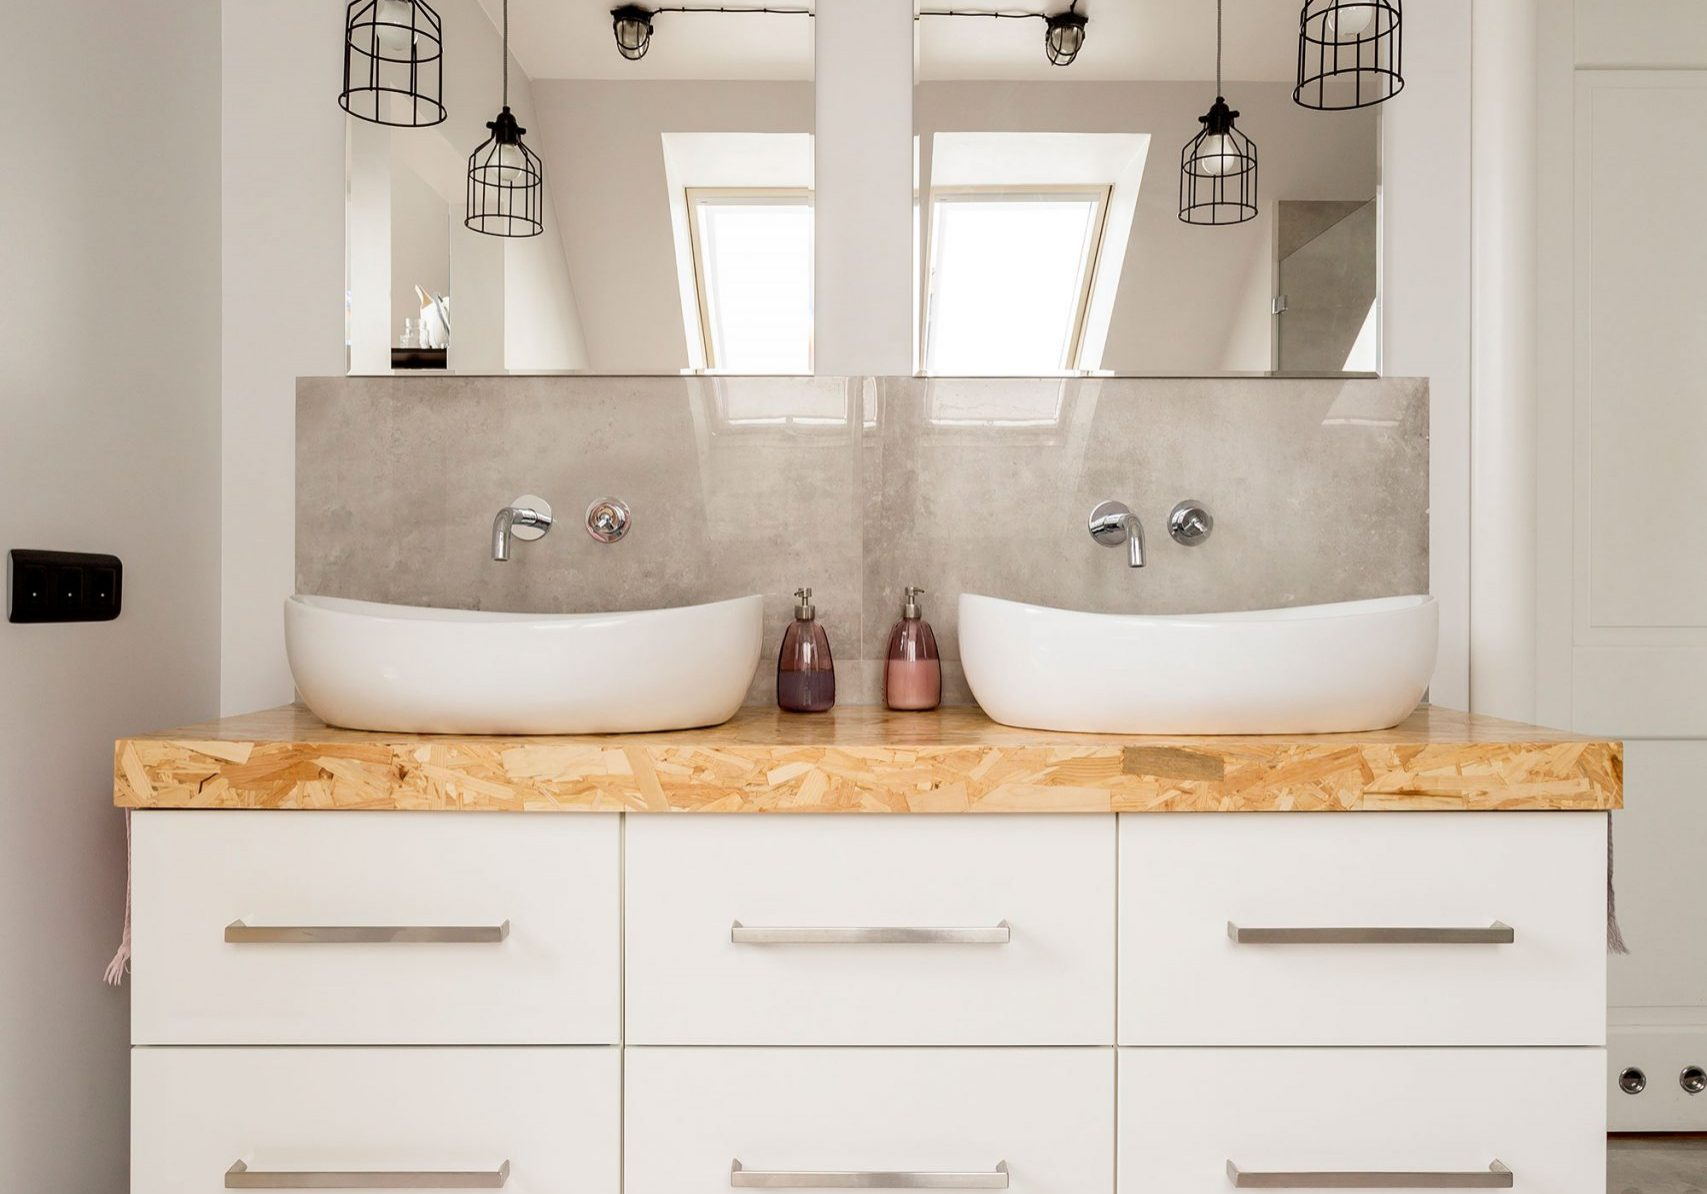 two-sinks-and-cabinet-in-bathroom-PEQDD5A